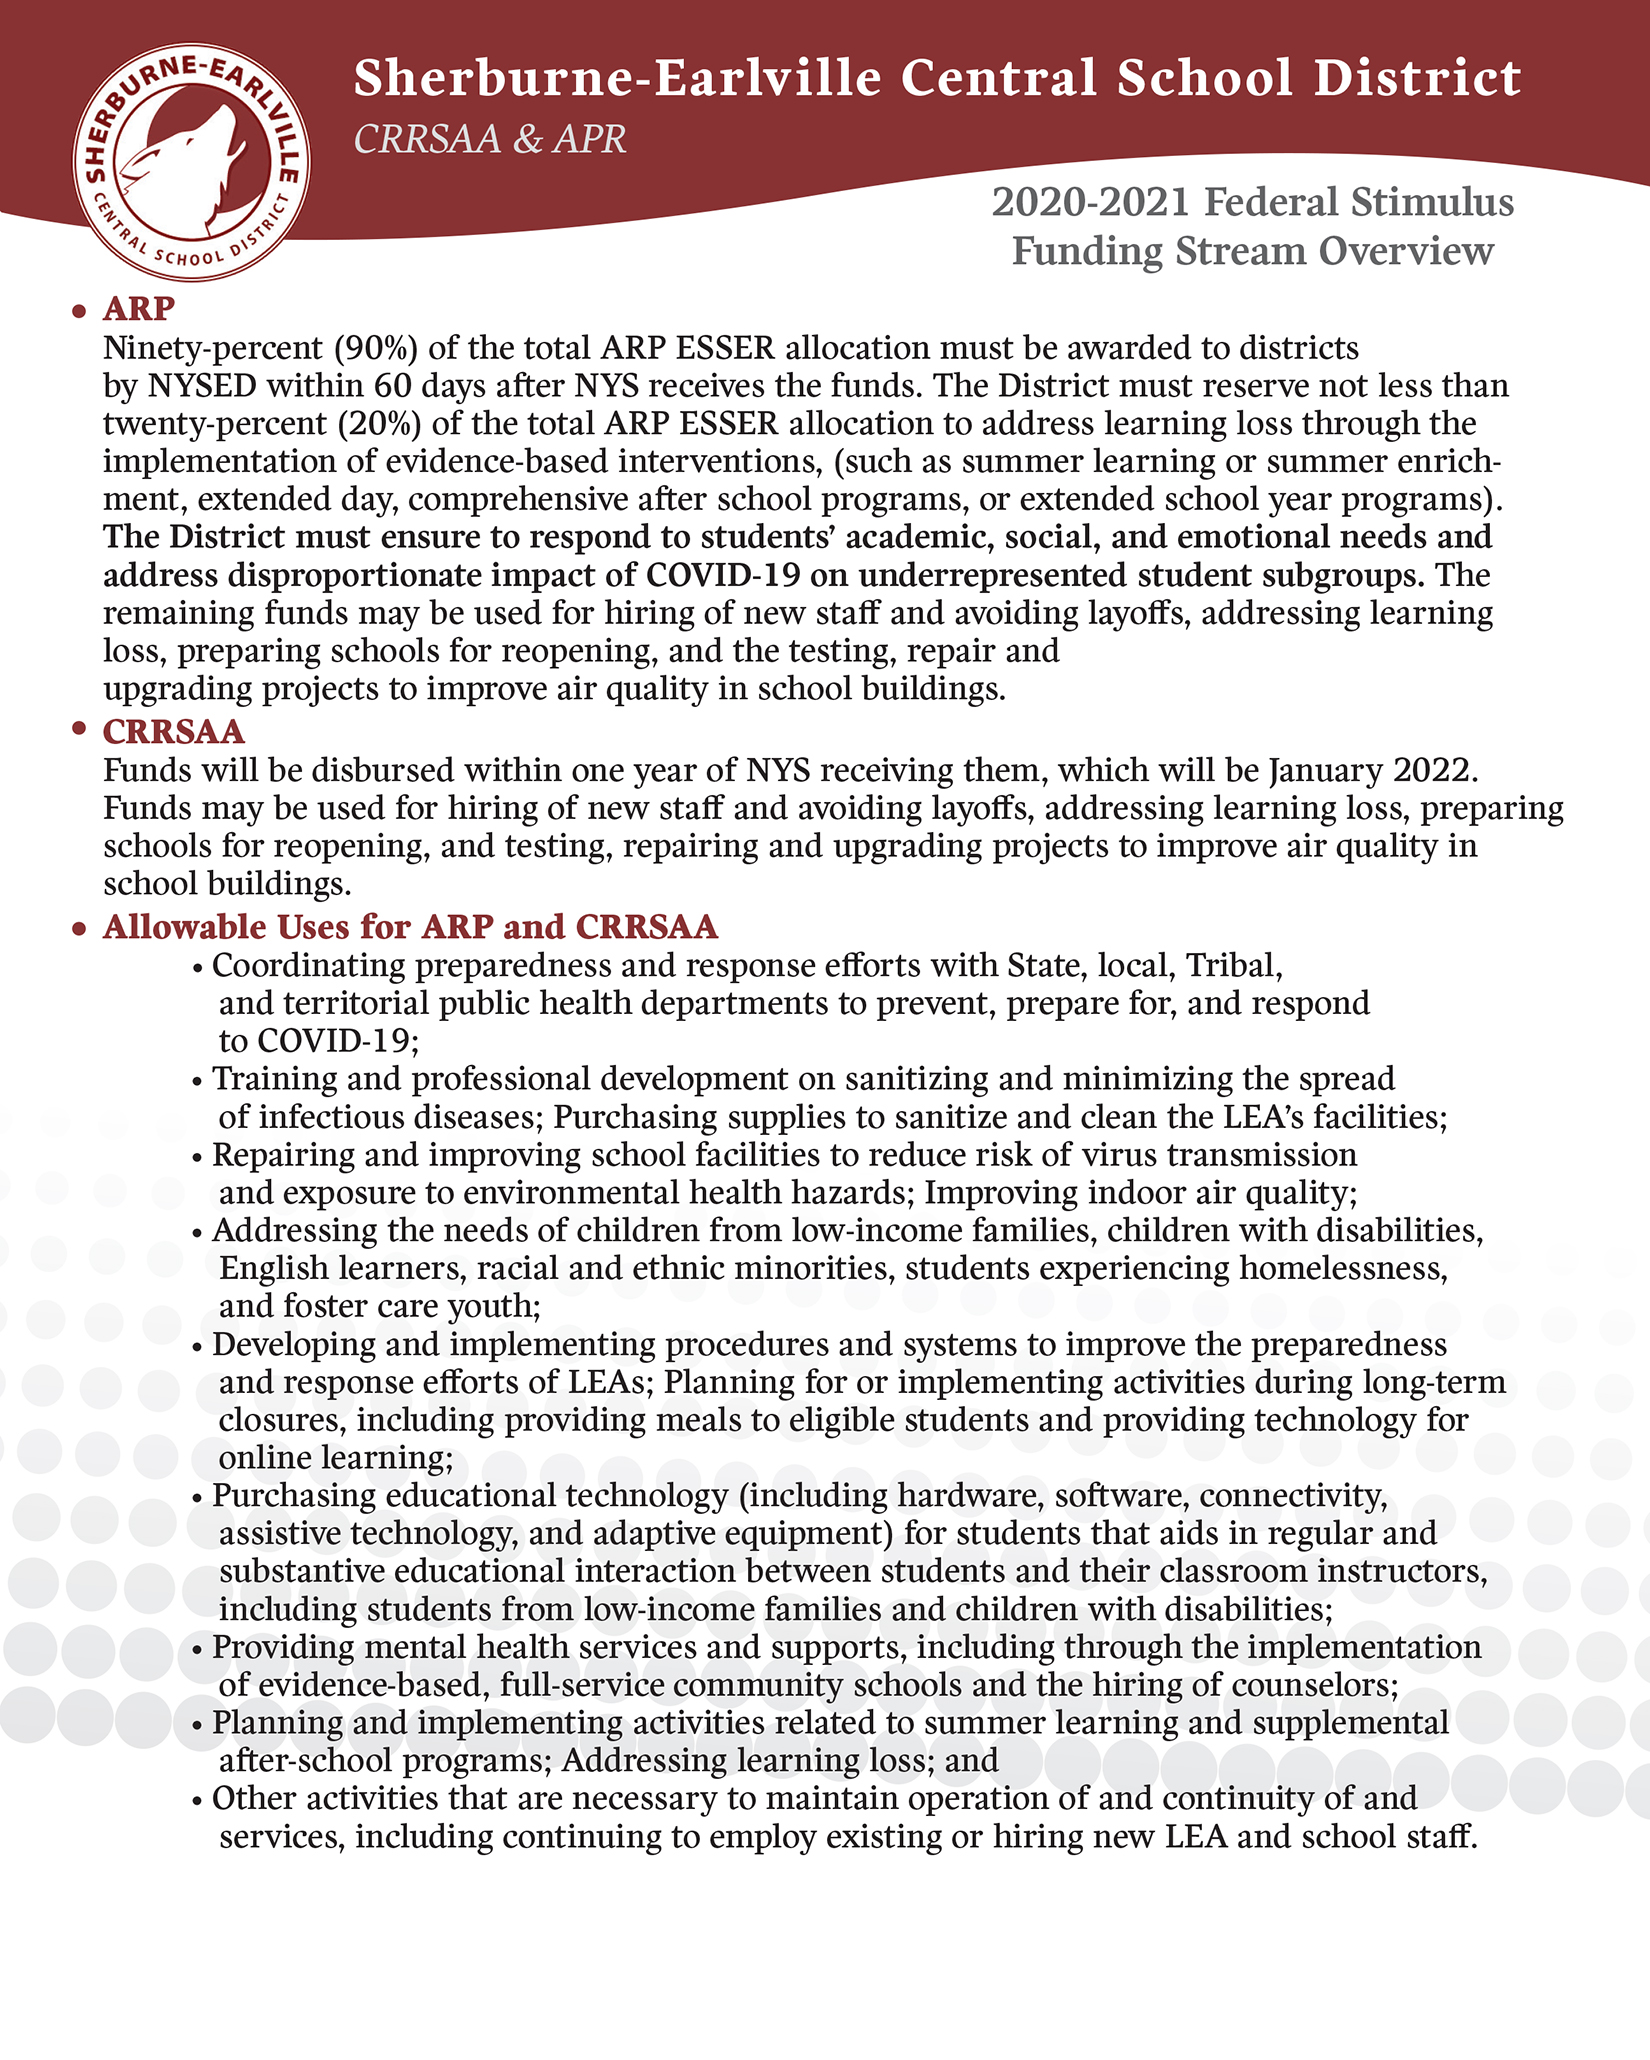 Federal Stimulus Overview Page 2